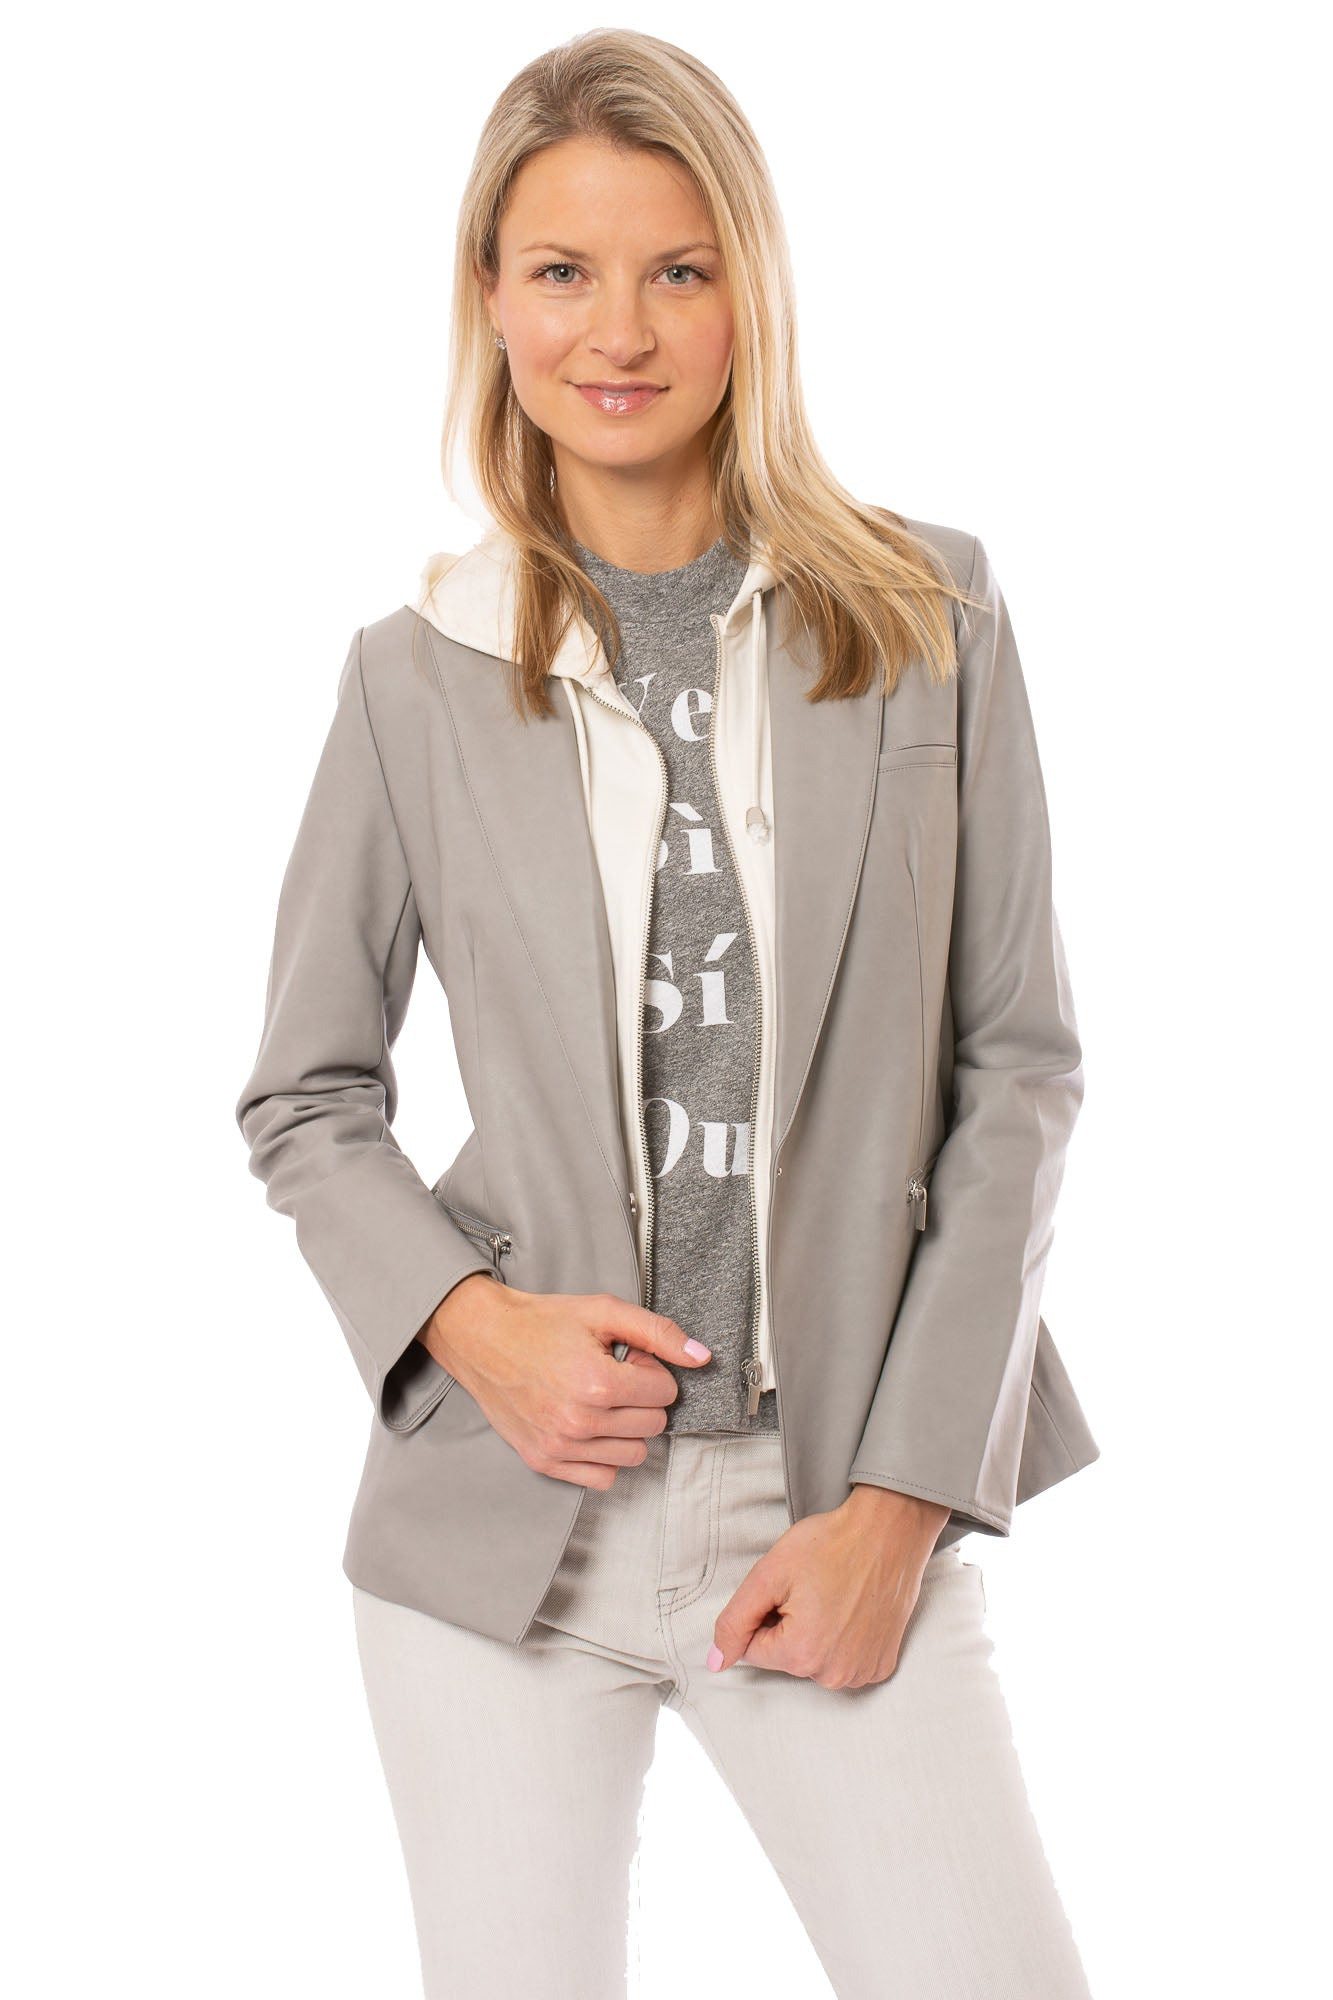 Love Token - Owen Sleek Hooded Pleather Blazer Coat (LT100-34, Gray)